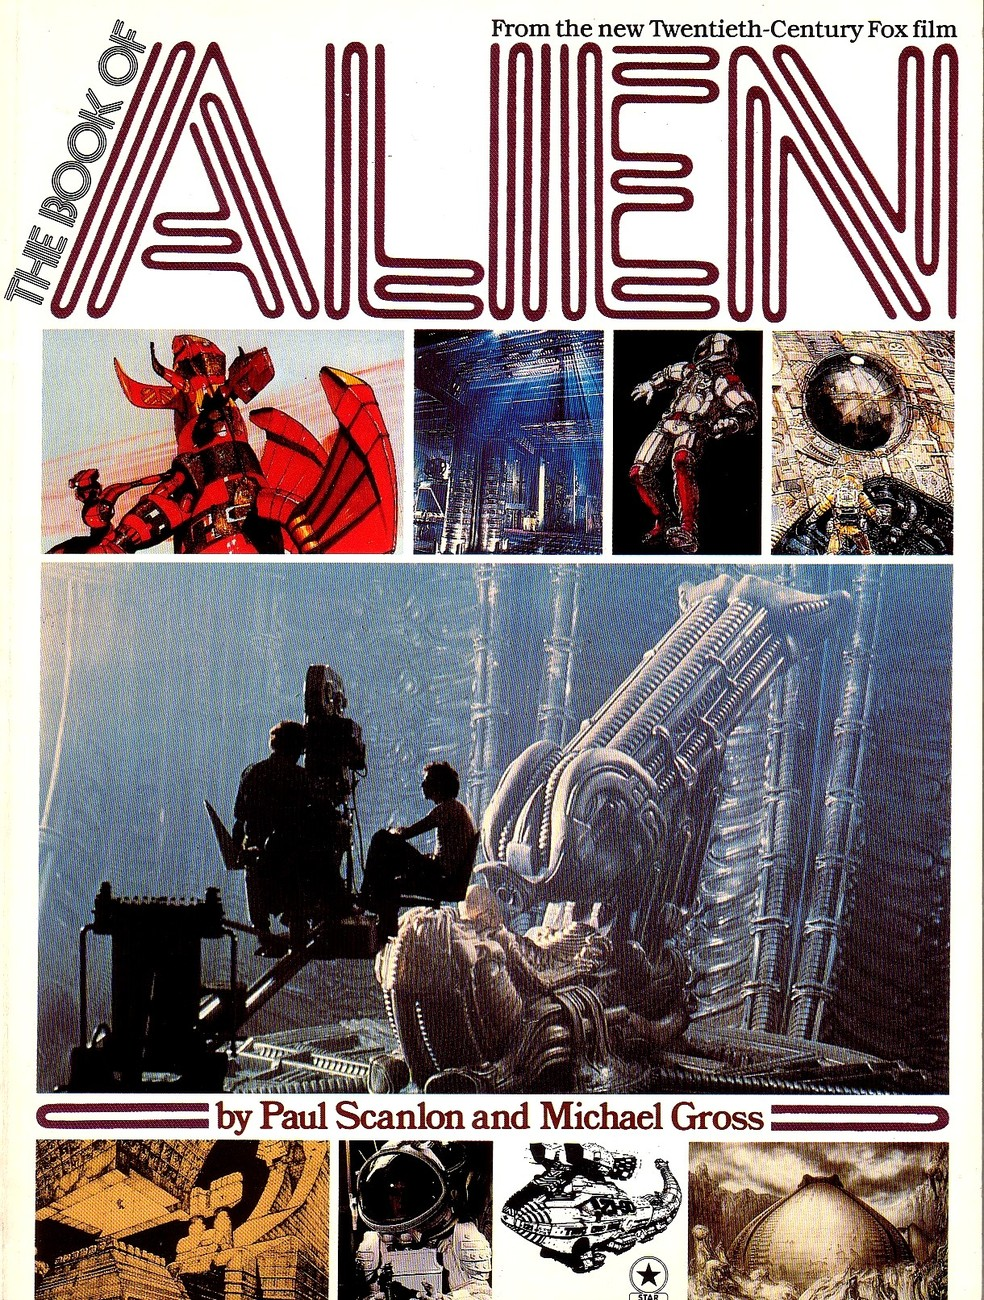 The Book of Alien New Twentieth Century Fox Films - Paul Scanlon Michael Gross